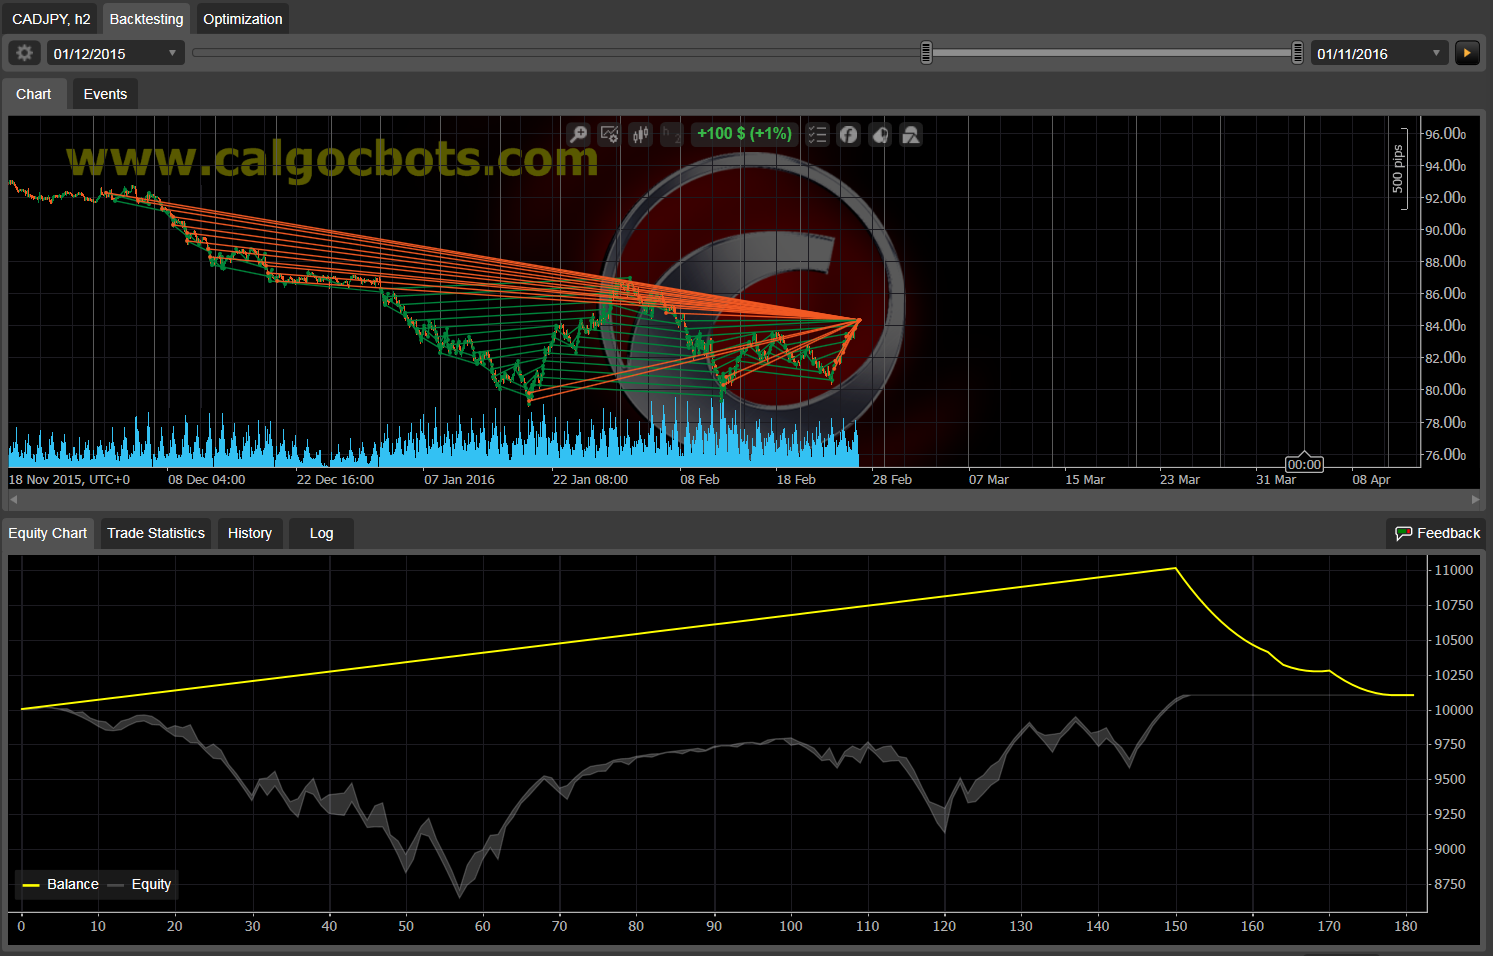 Dual Grid Hedge CAD JPY 1h cAlgo cBots cTrader 1k 100 50 100 - 05 a